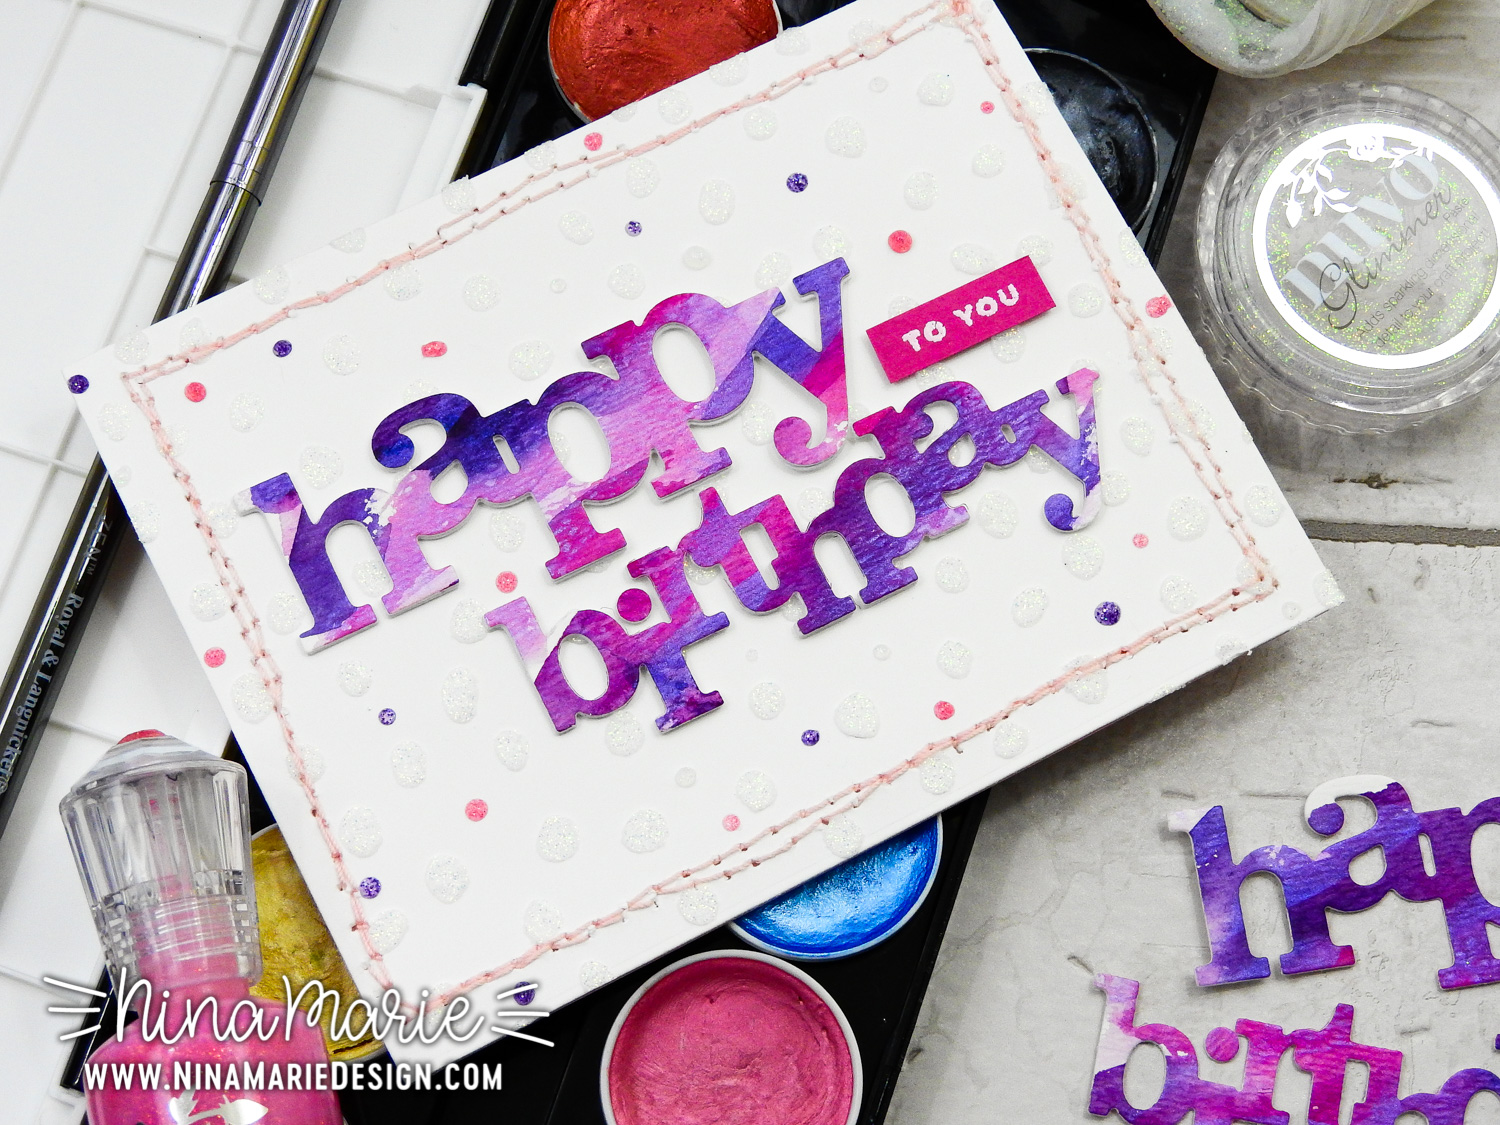 Glimmer Paste + Shimmer Paint + Stitching + Hop | Nina-Marie Design